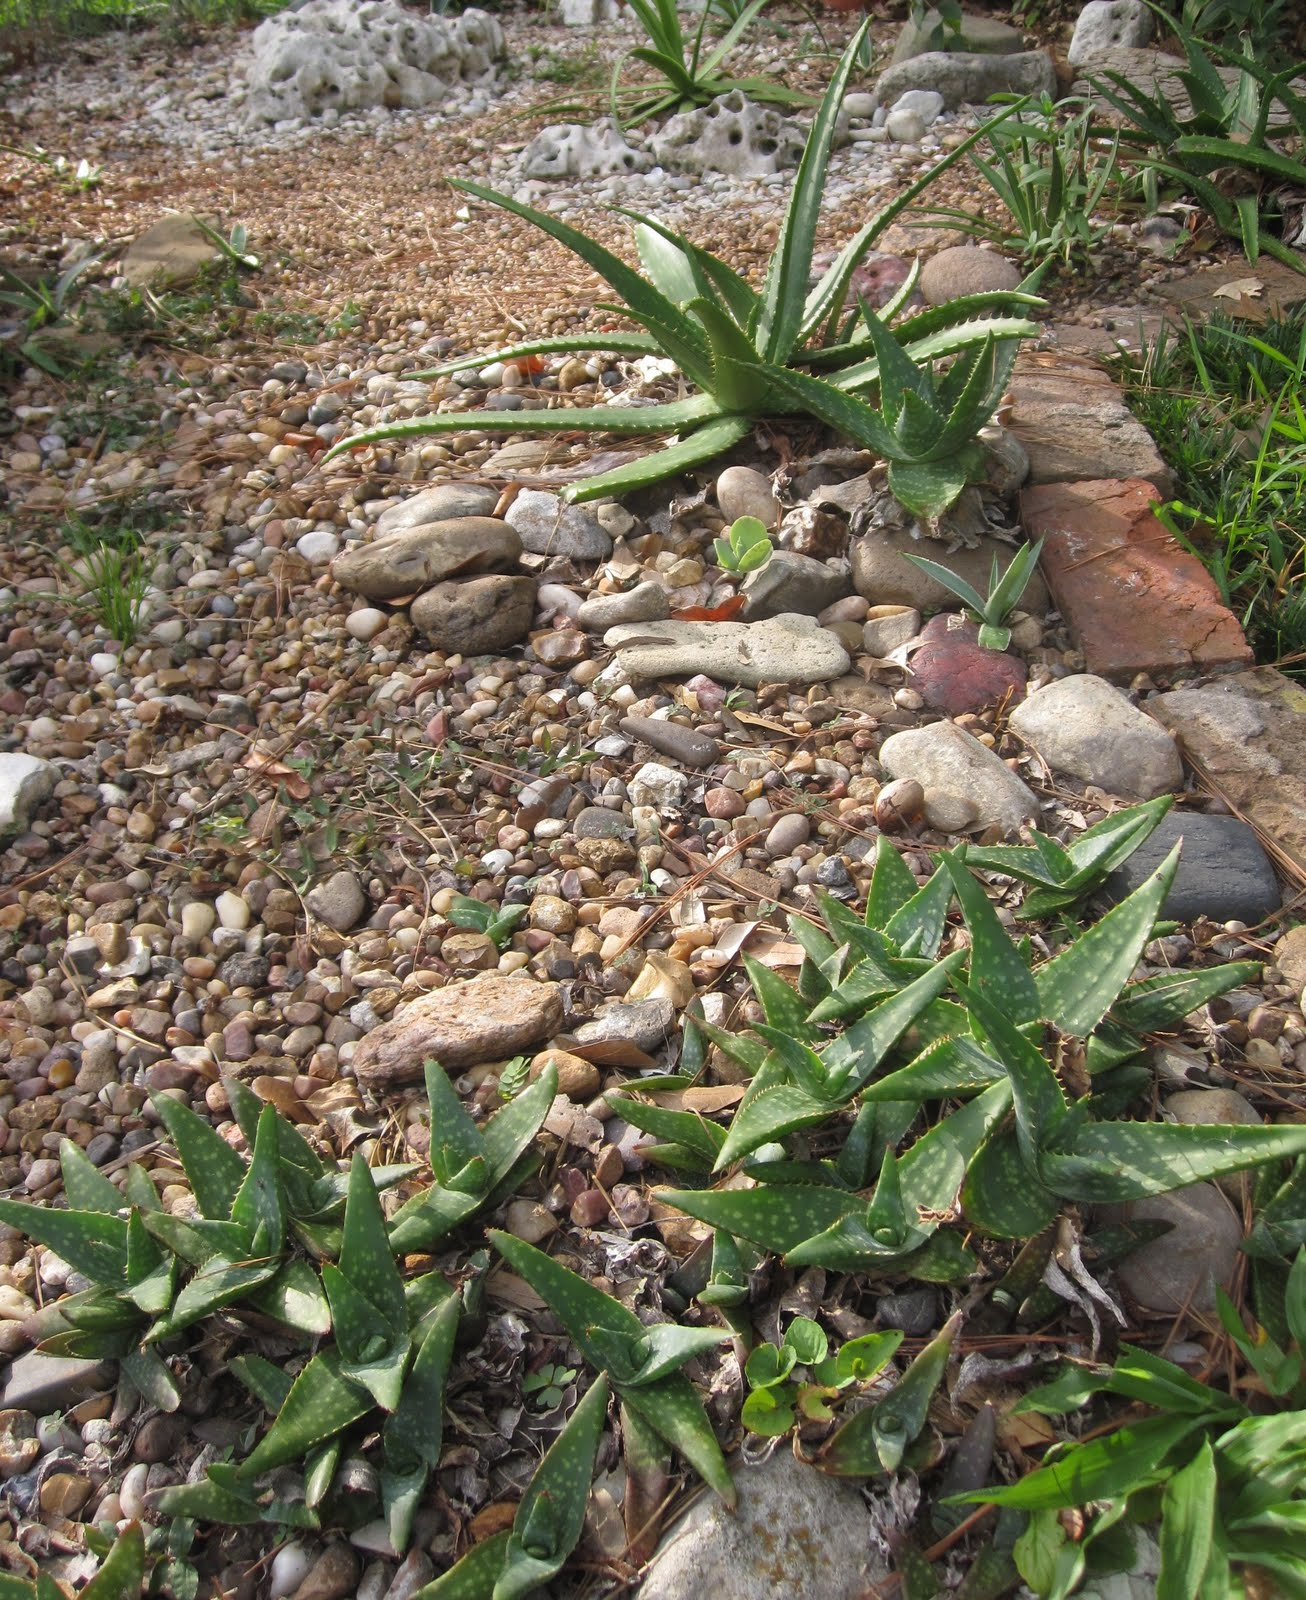 Tropical Texana: LANDSCAPING WITH ALOES: UNSUNG HEROES